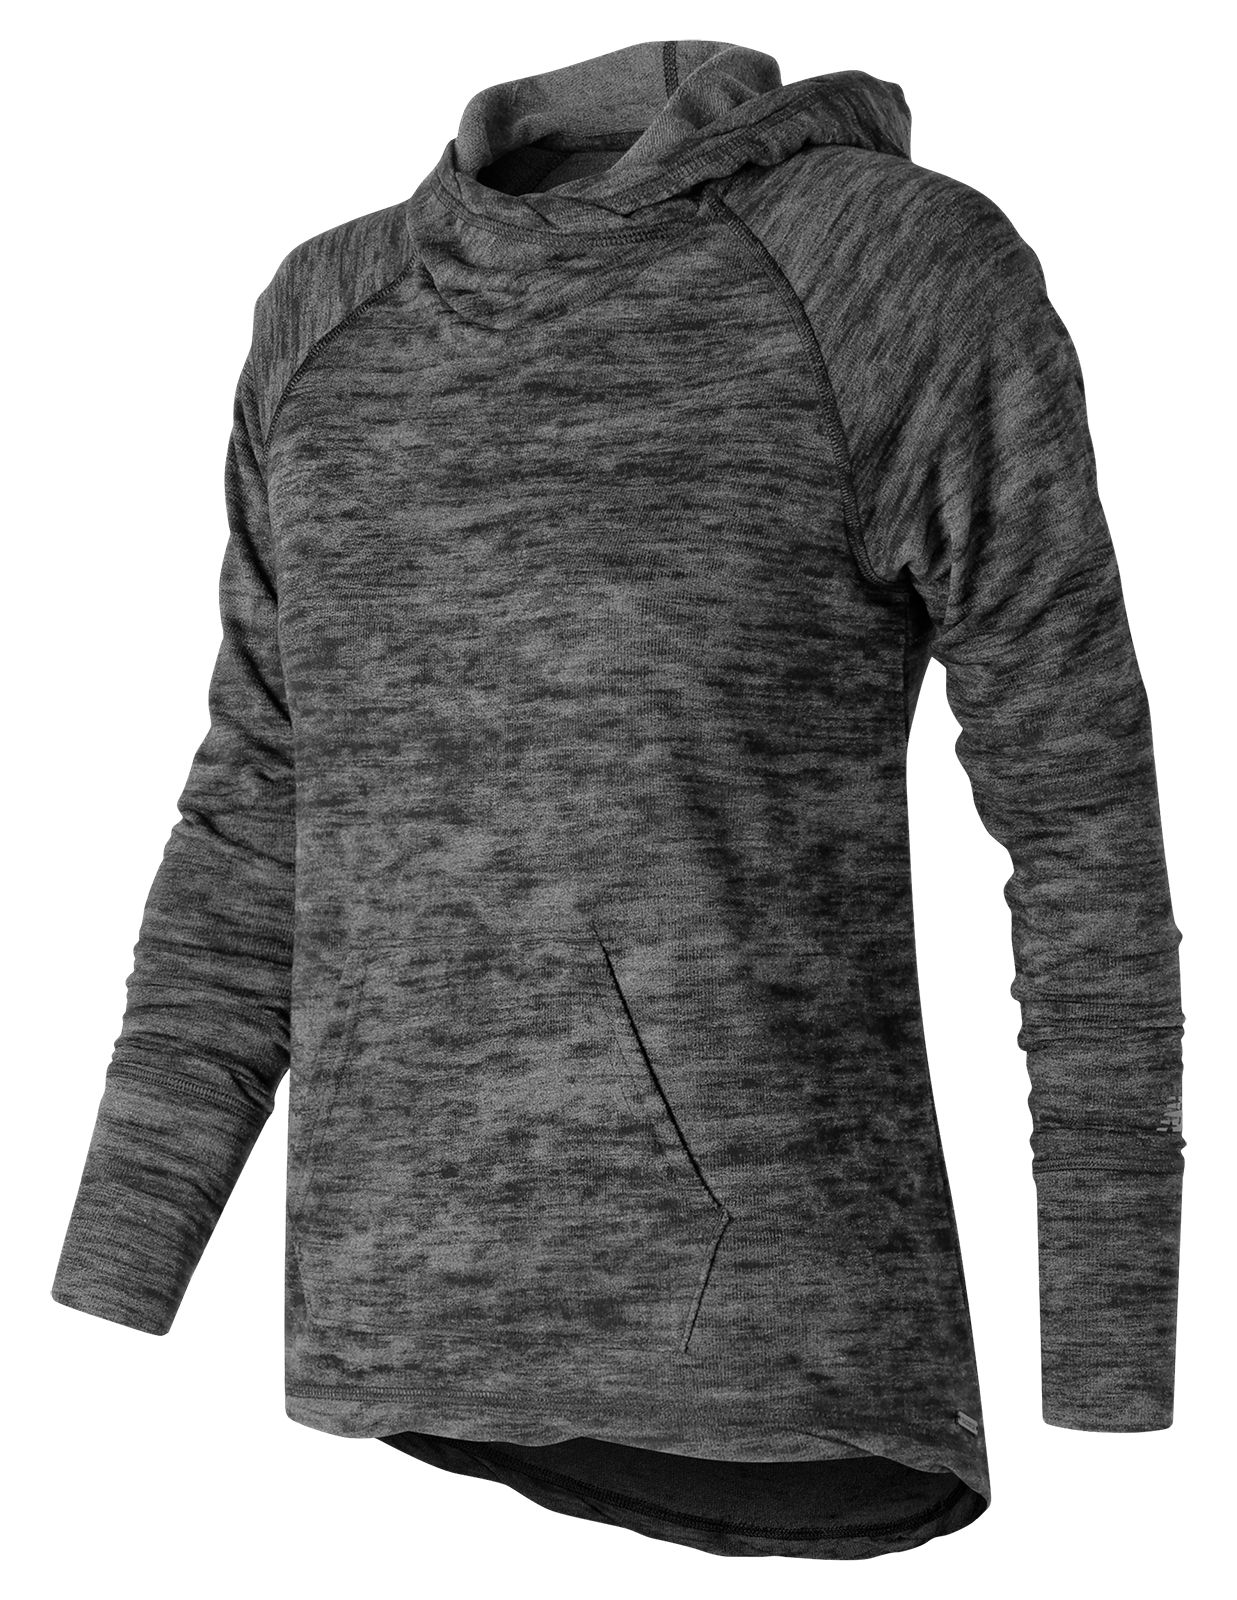 NB Hatha Hoodie, Charcoal Heather